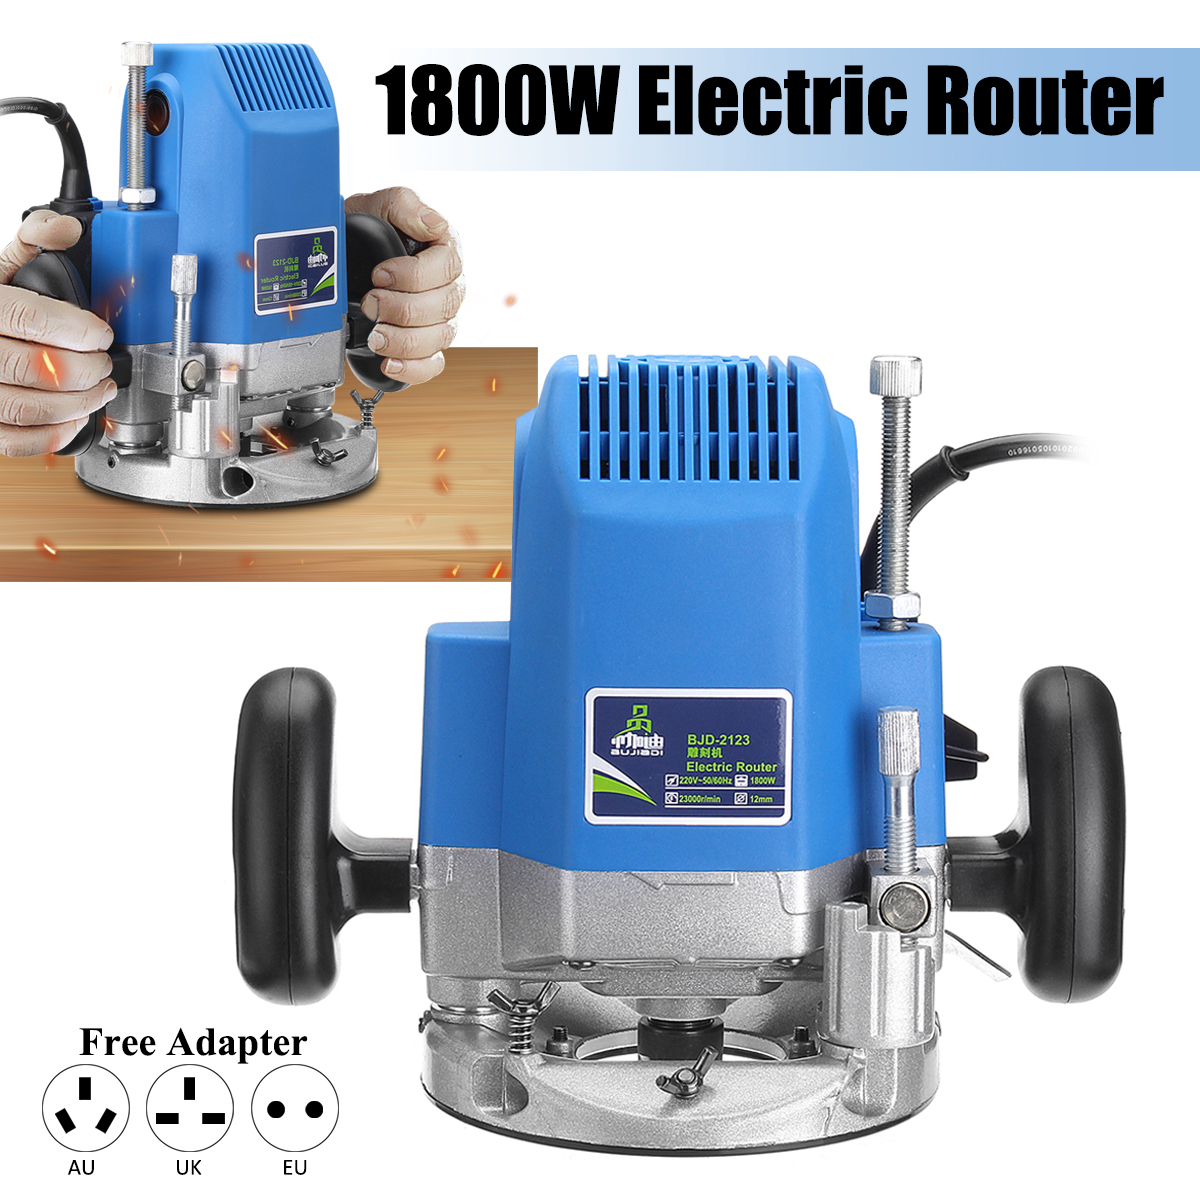 1800W 1/4 inch Electric Trimmer 220V Electric Wood Router 23000RPM Woodworking Trimming Router Folding e dge Carving Power Tools 220v high power woodworking engraving machine electric router grooving trimming machine 1800w 23000rpm